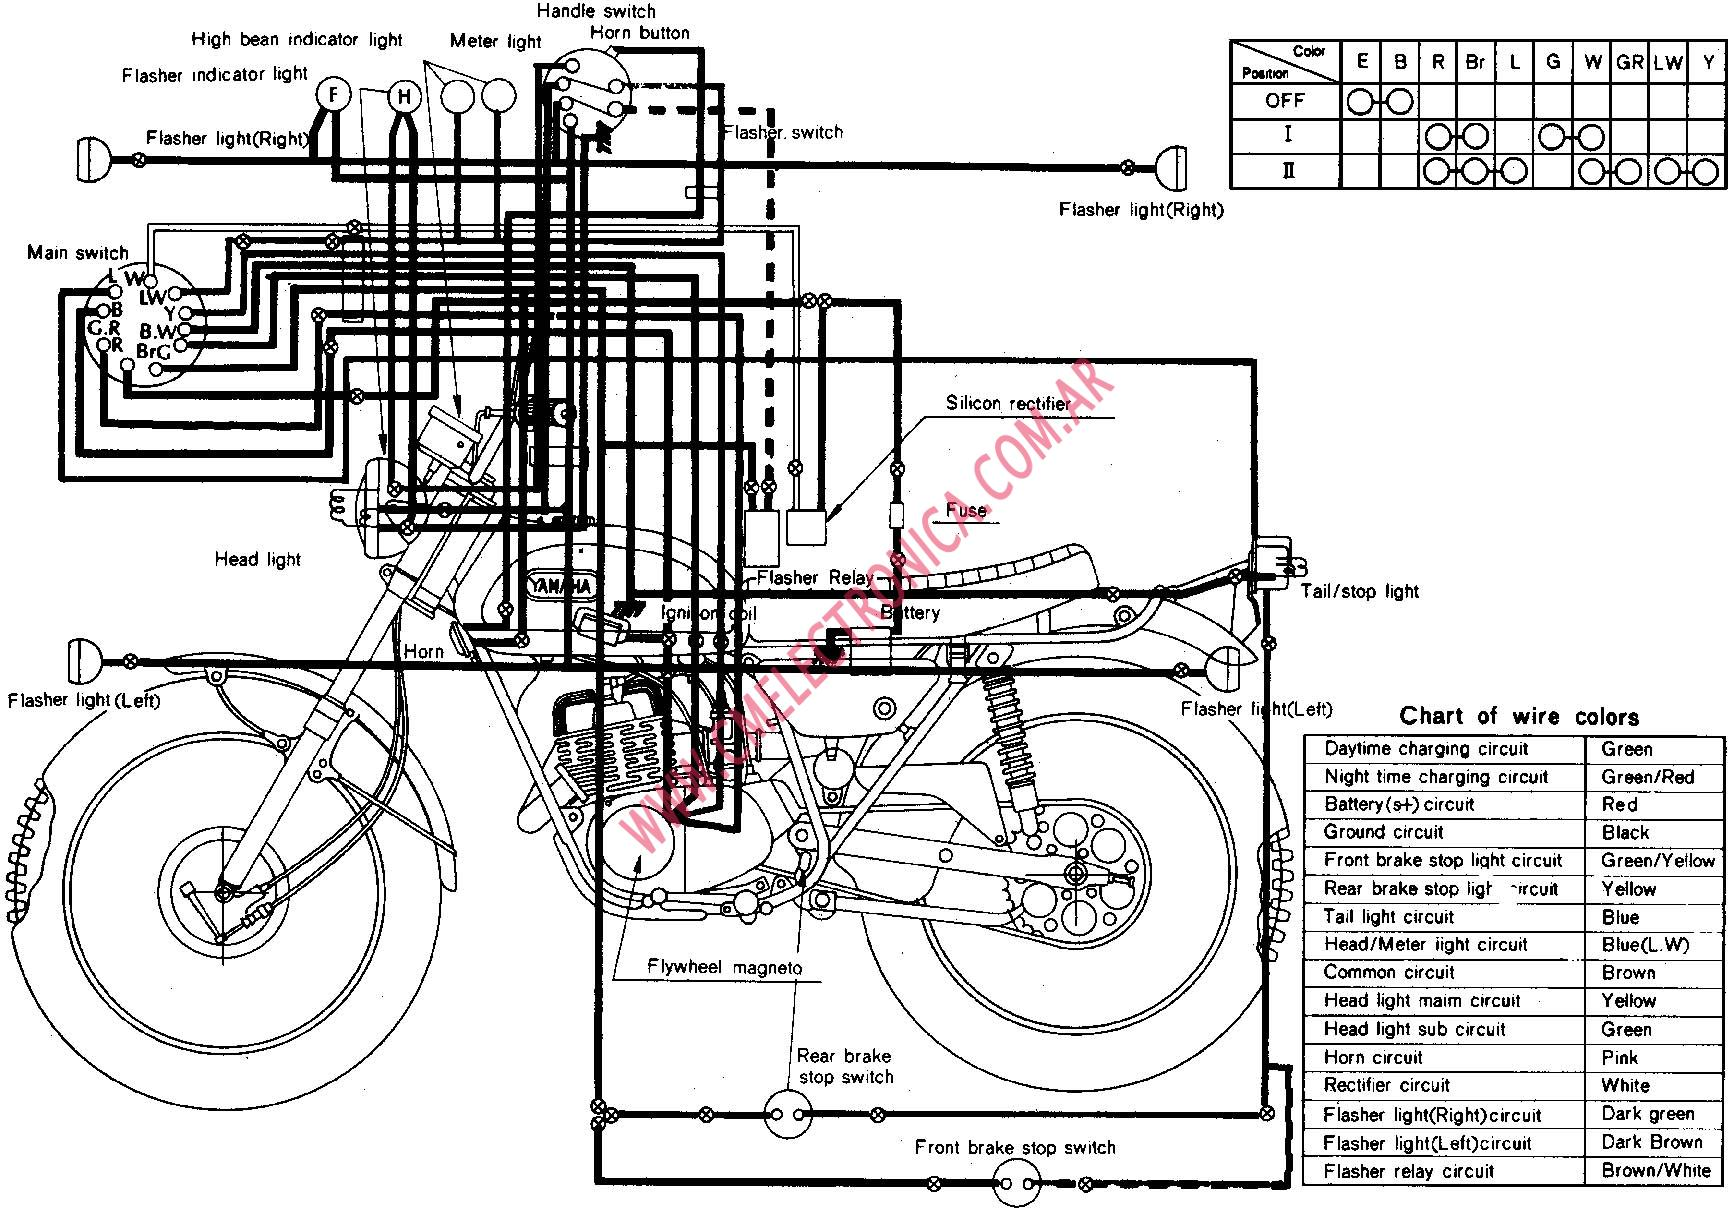 rt 100 diagram related keywords suggestions rt 100 diagram yamaha dt250 wiring diagram further dt 175